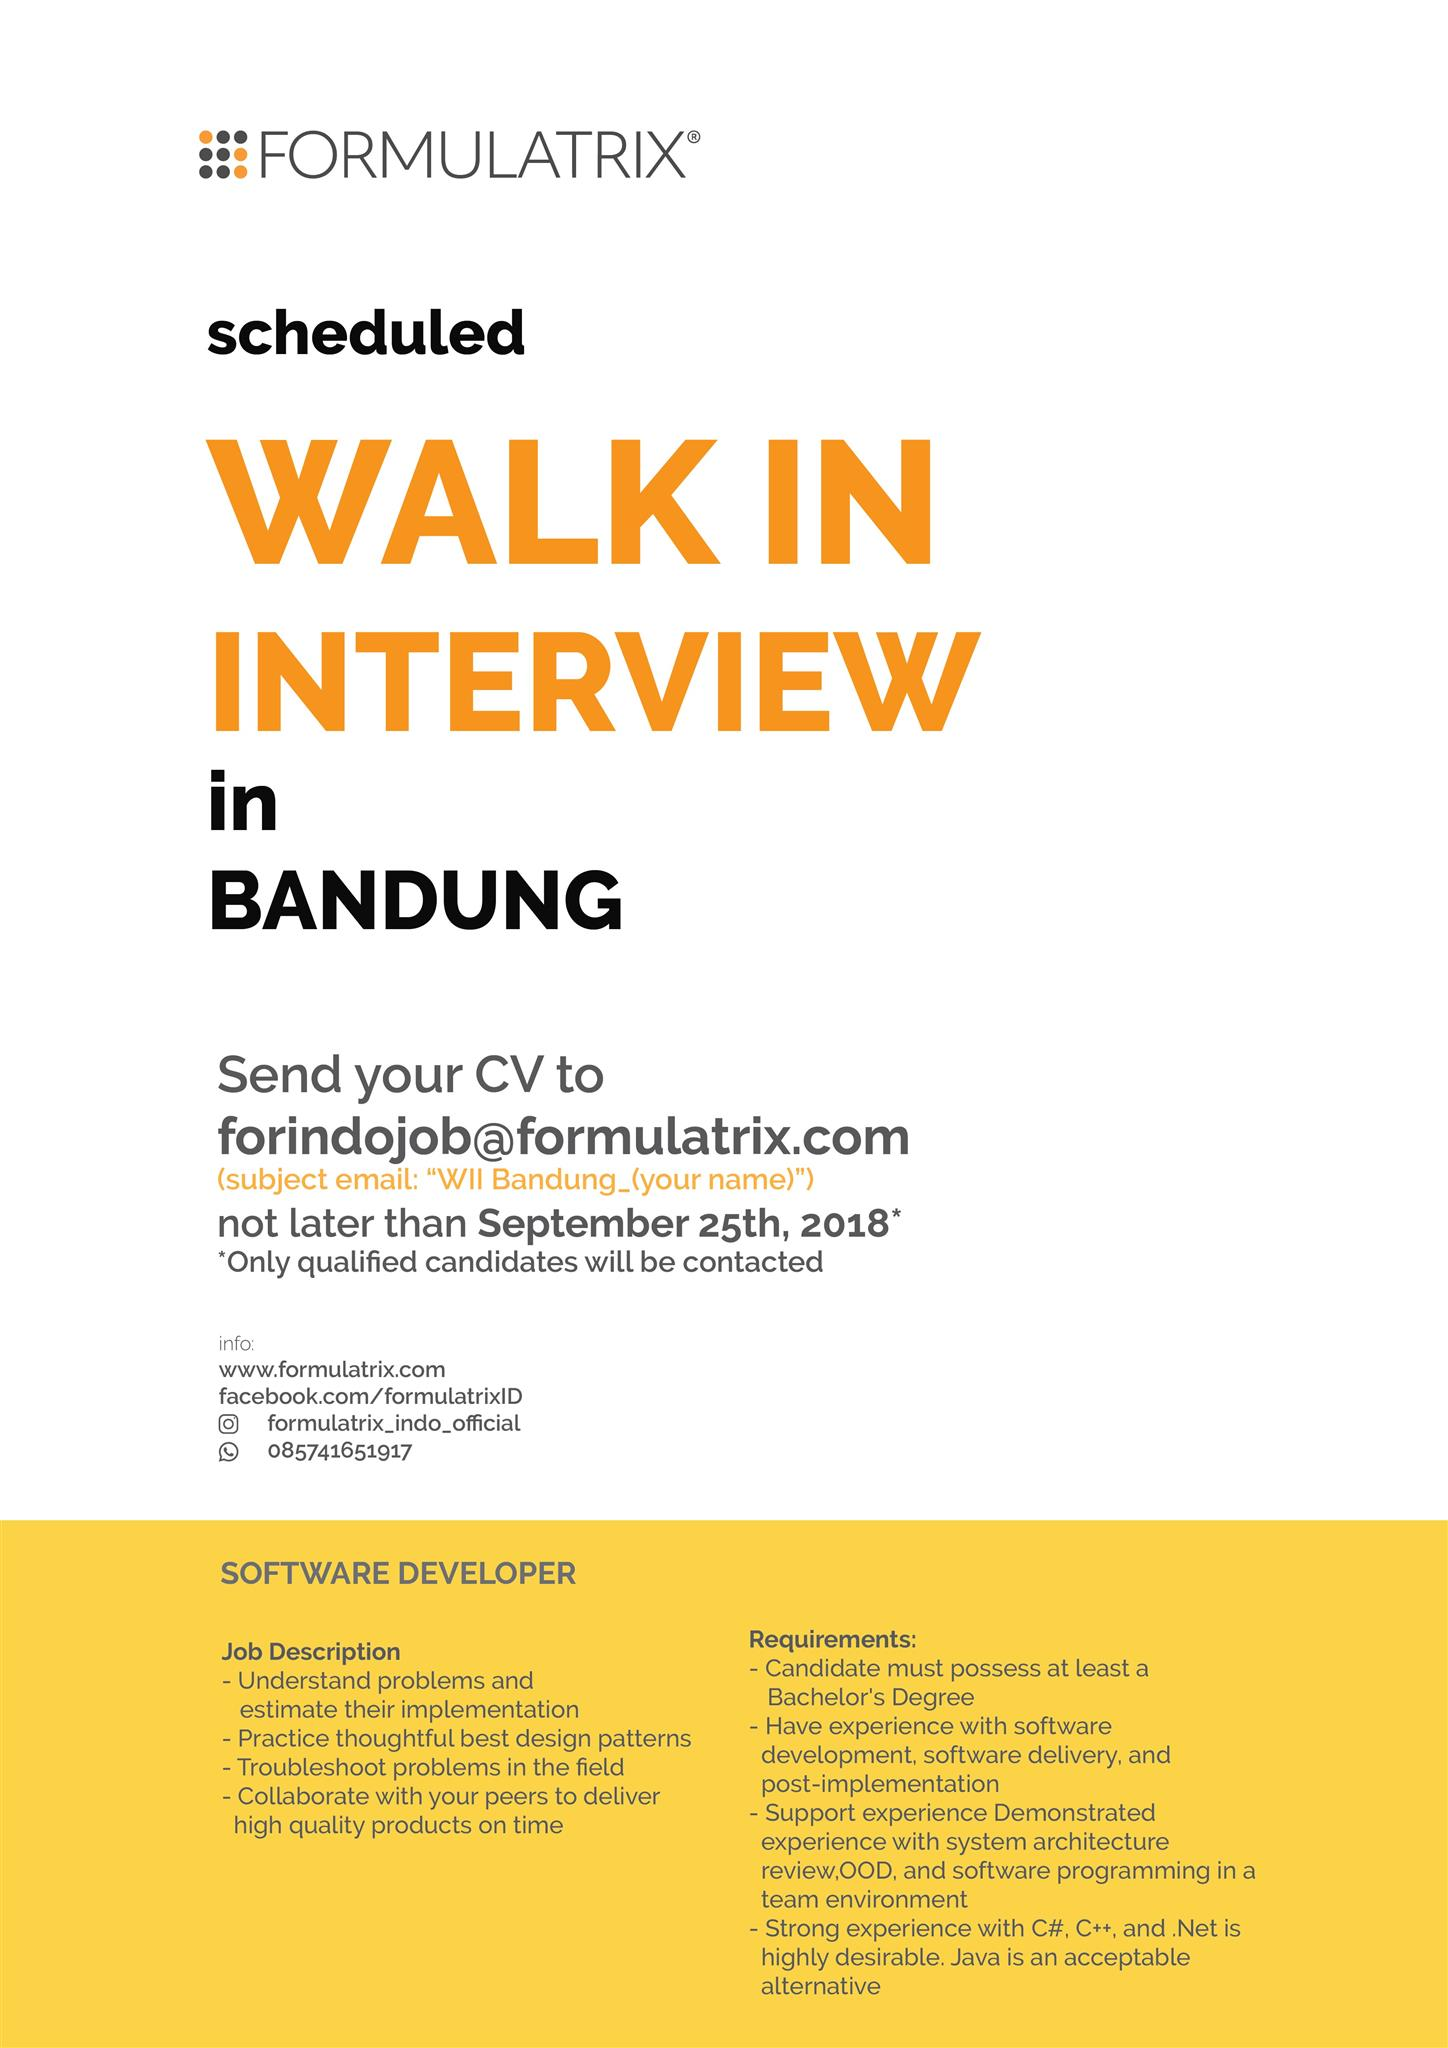 walk-in-interview-bandung.jpg